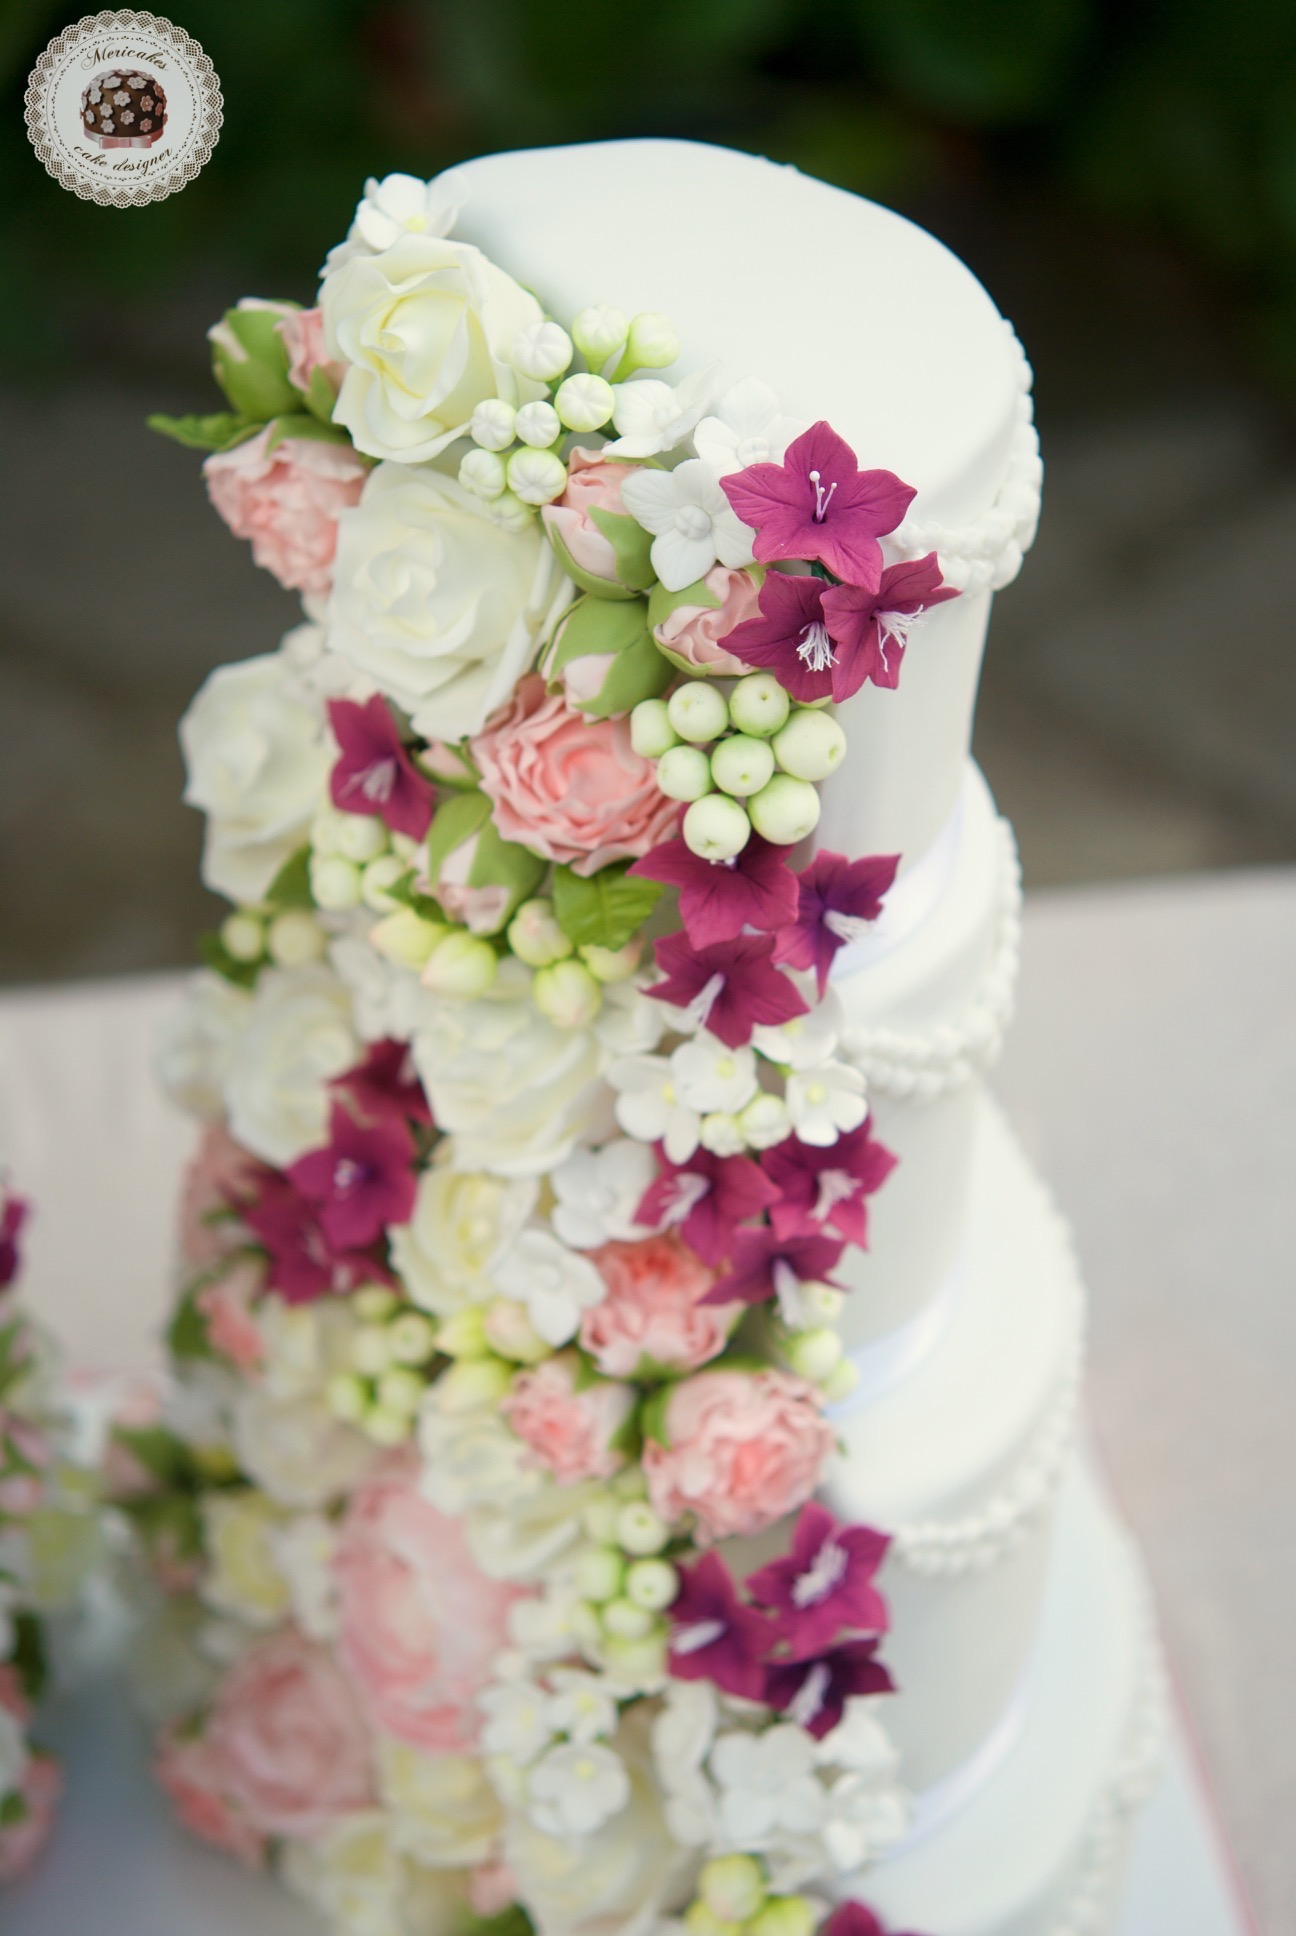 White wedding cake with colorful gum paste sugar flower center